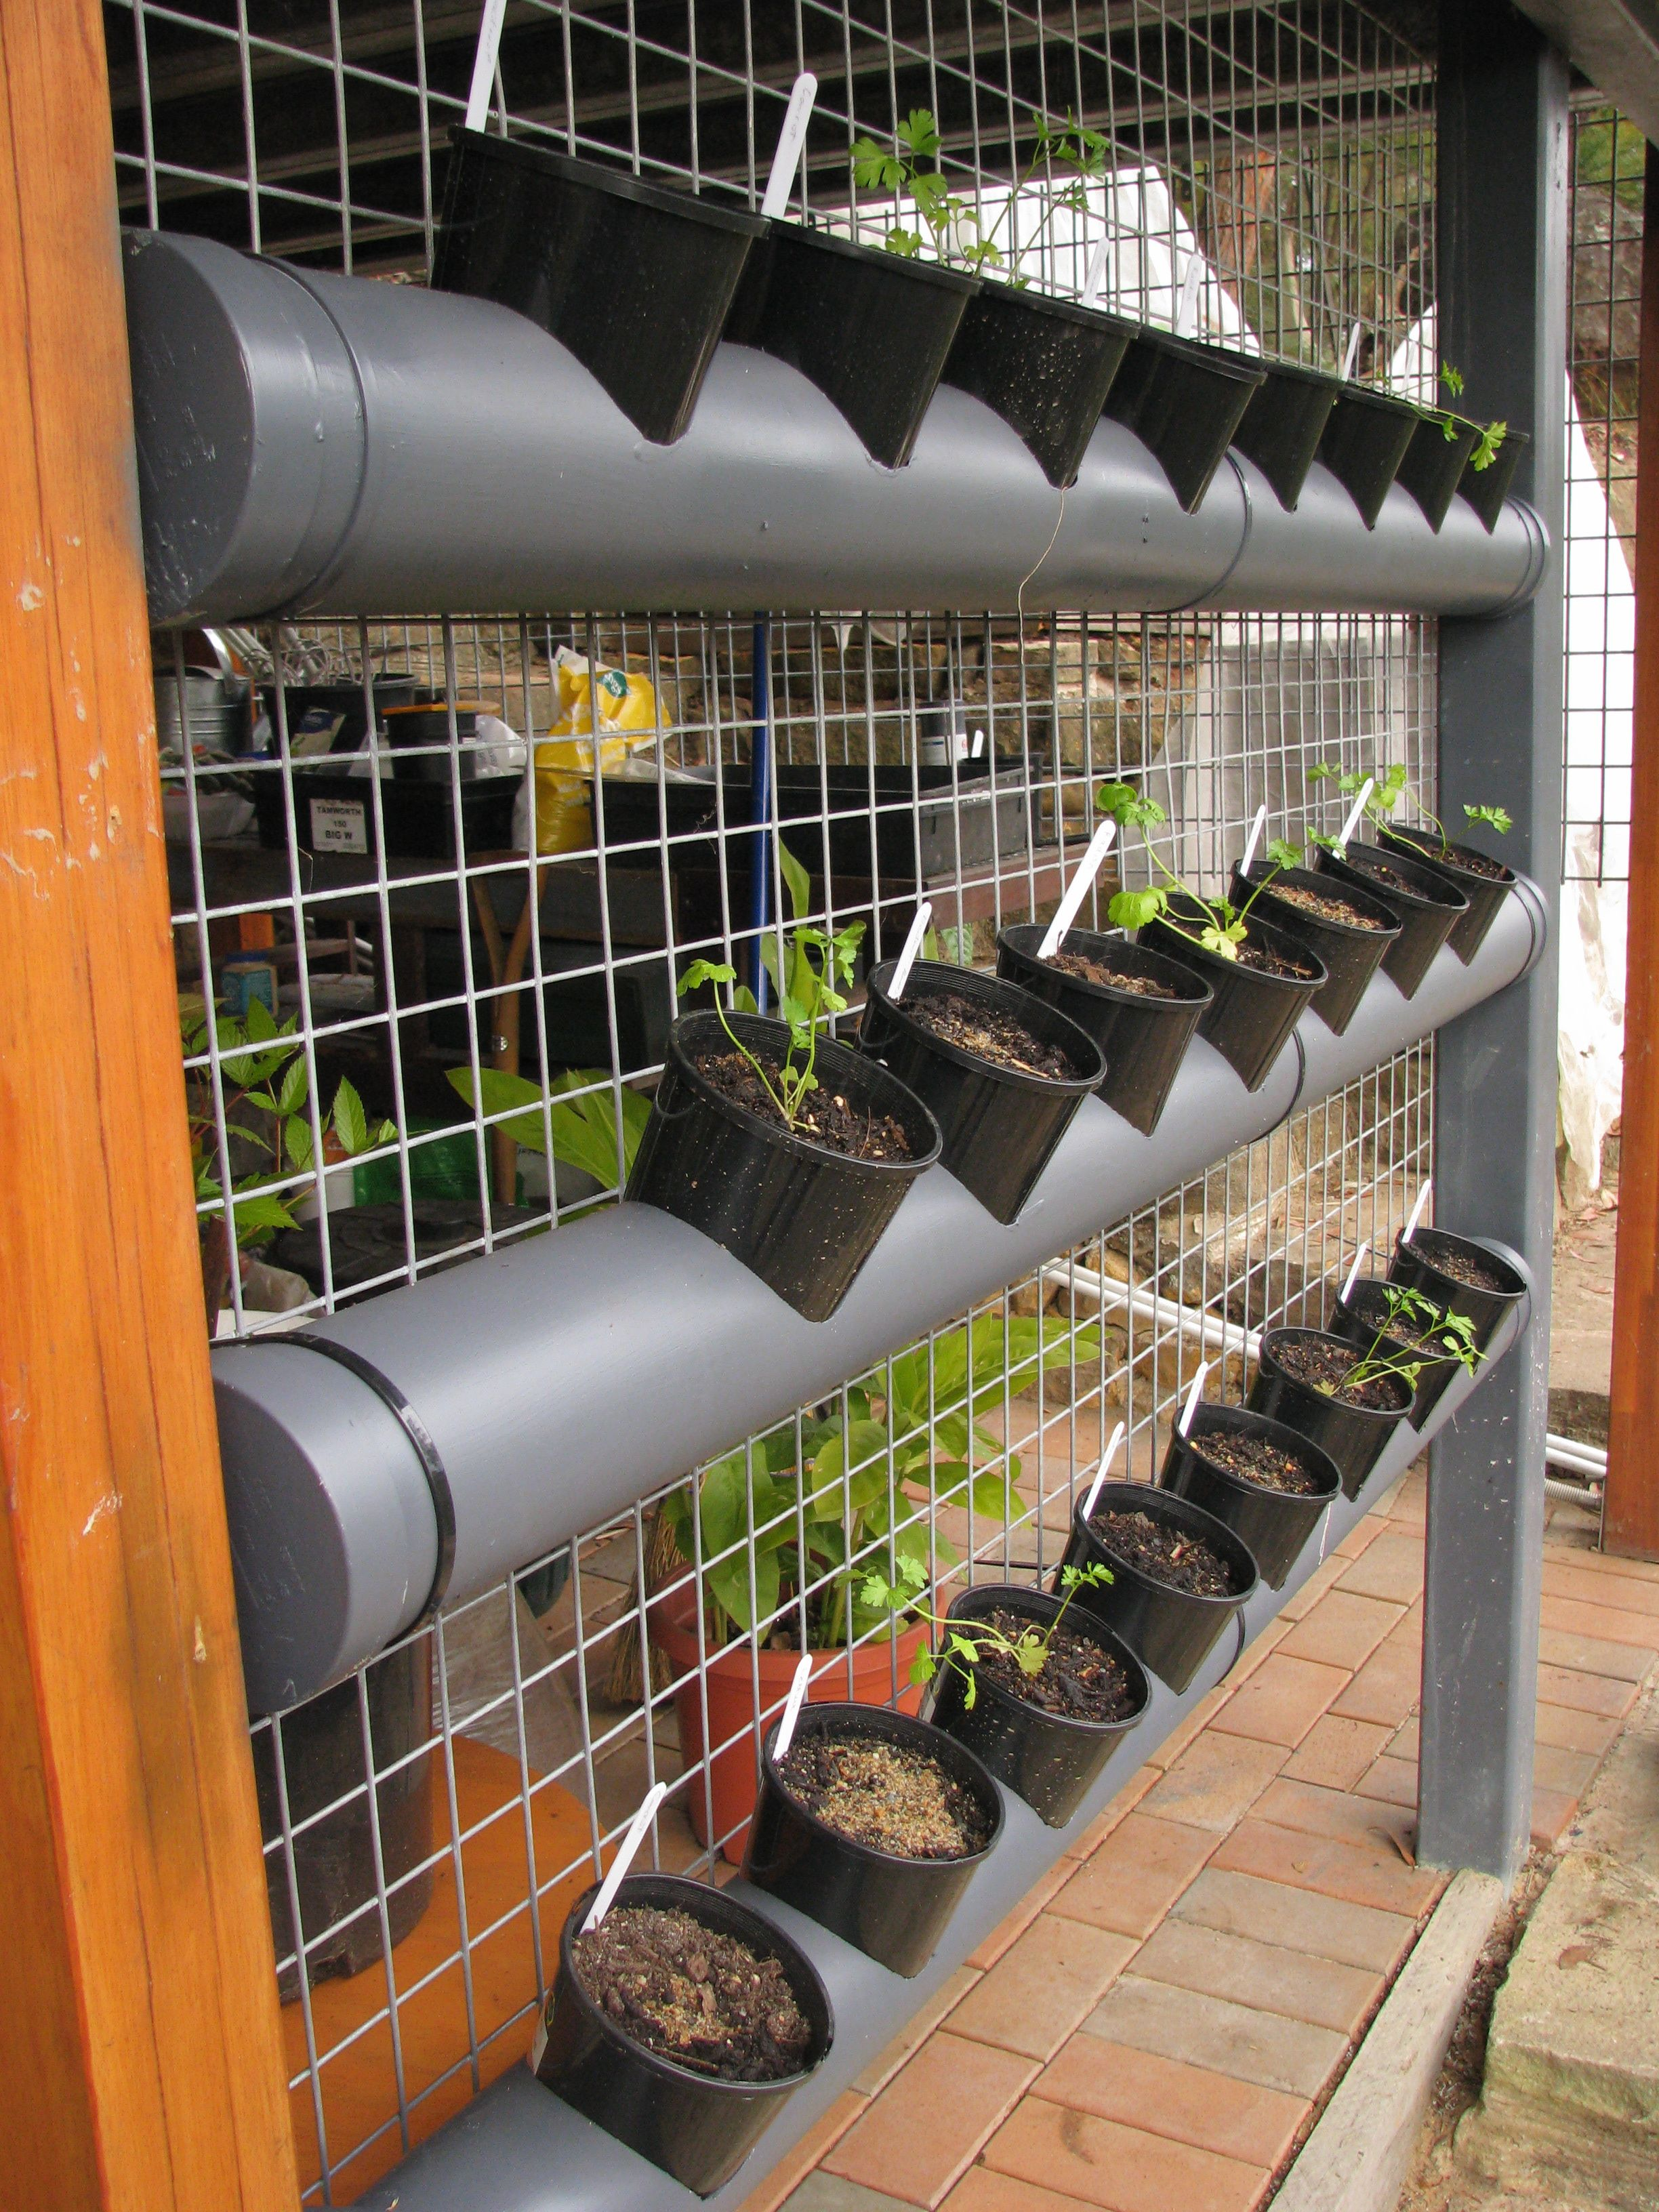 growing with patio vegetable on ideas small and spaces the vertical trellis baskets wall mounted or wire it plants indoor for garden deck